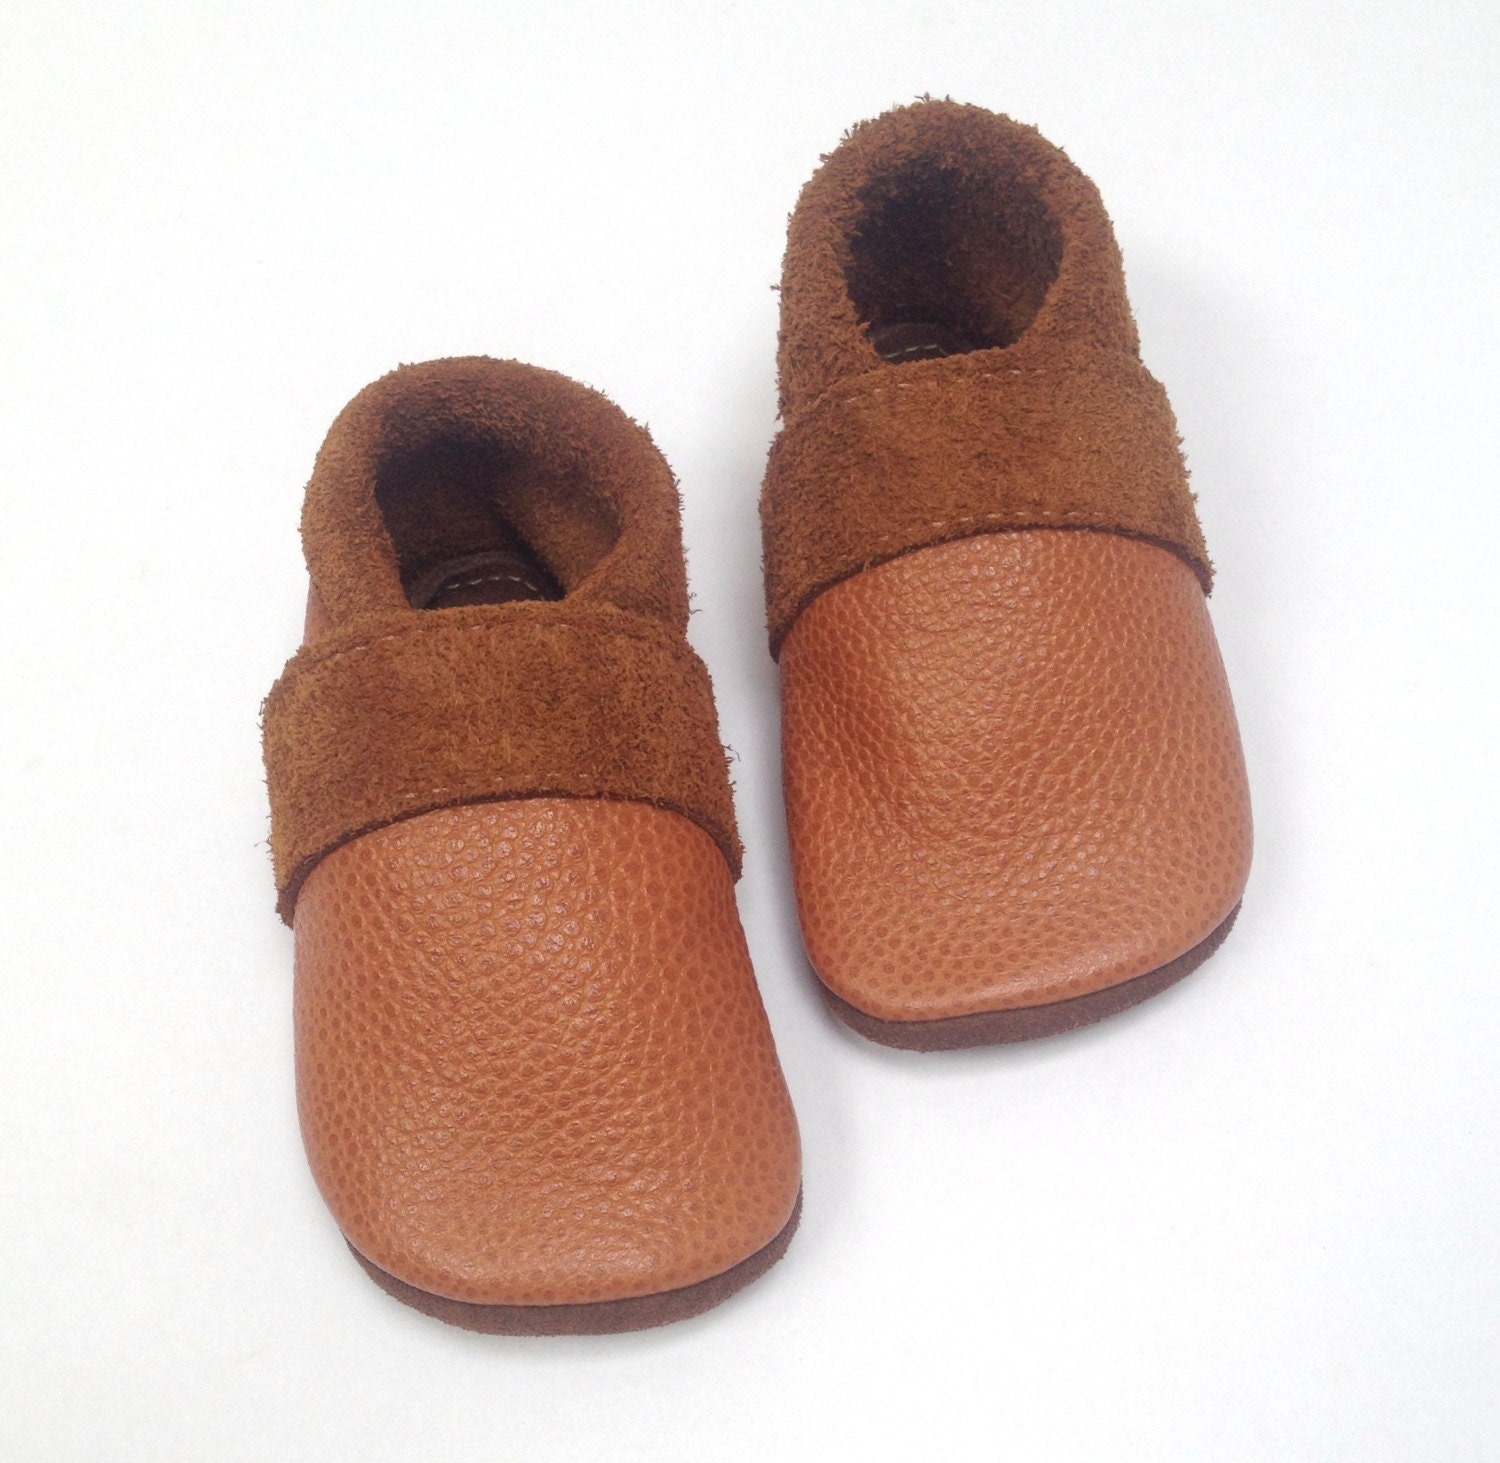 leather baby moccasins soft sole shoes eco friendly recycled